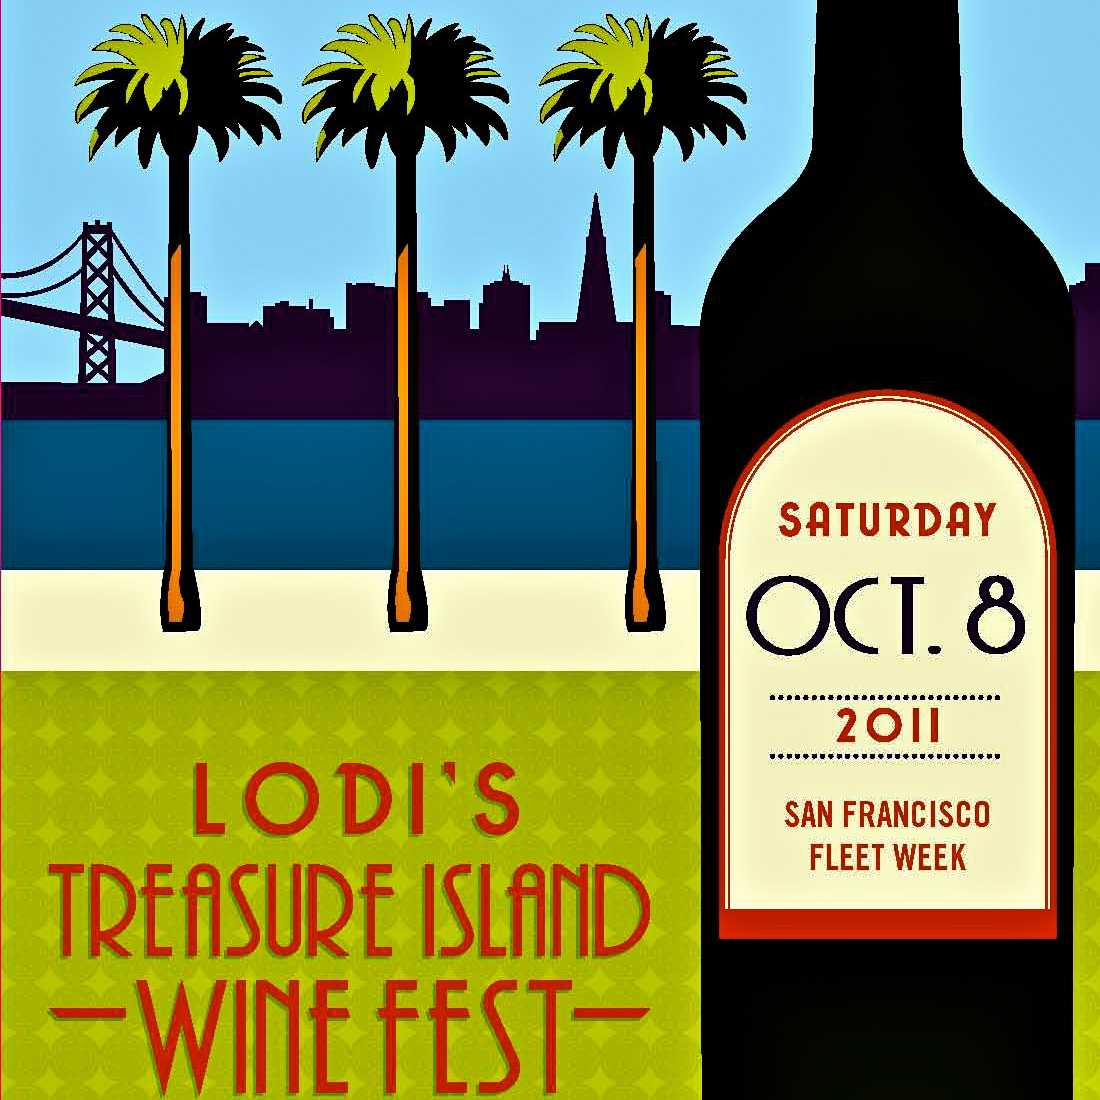 27 reasons to be at Treasure Island fest